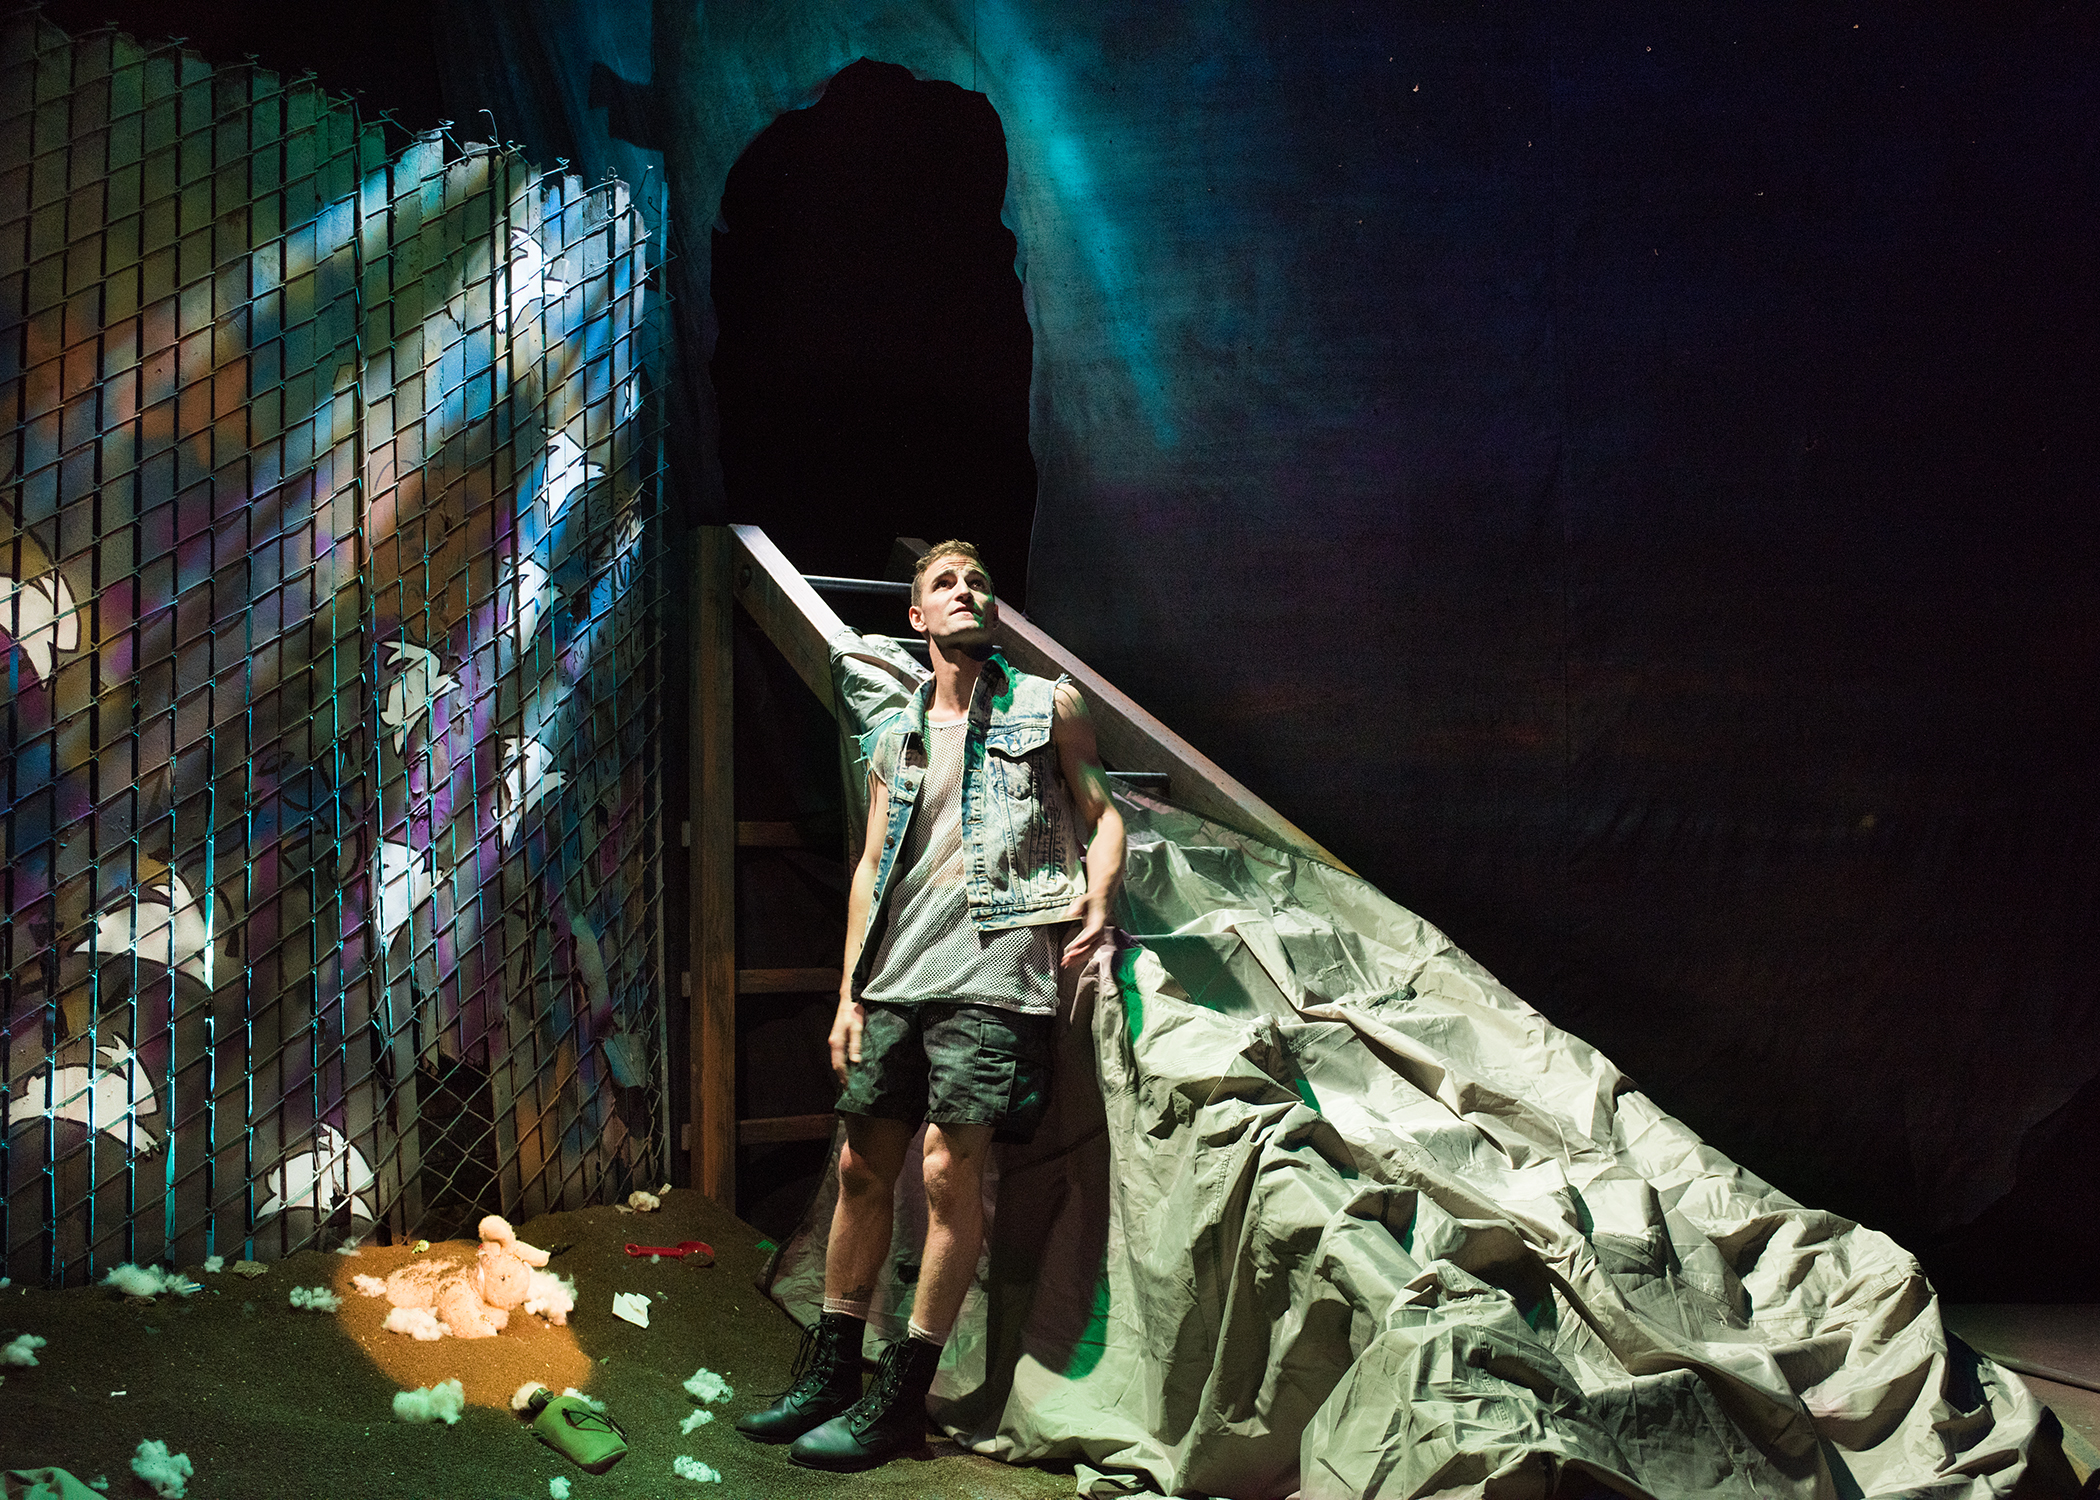 JD Scalzo.  Scenic Design by Devin Kasper, Costume Design by Miriam Lewis, Lighting Design by Christian V. Mejia, Sound Design by Theodore J.H. Hulsker, Prop Design by Adeline Smith, Stage Management by Kaitlin Rosen.  Photo by Lois Tema.